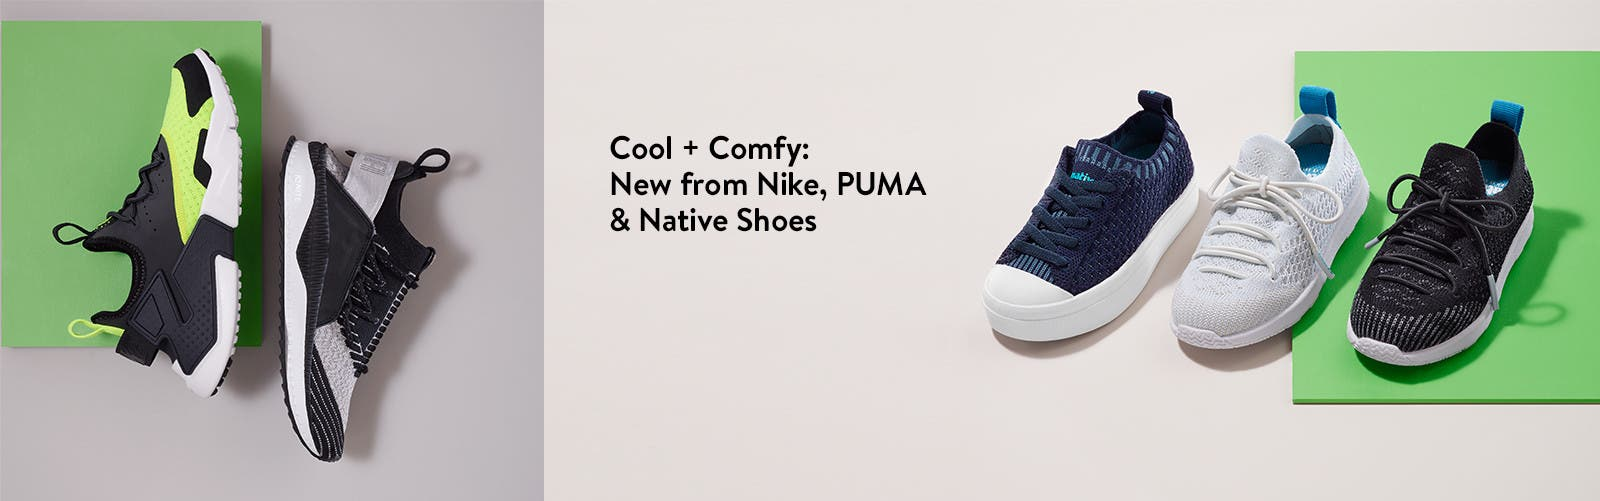 Cool + comfy: new boys' shoes from Nike, Puma and Native Shoes.